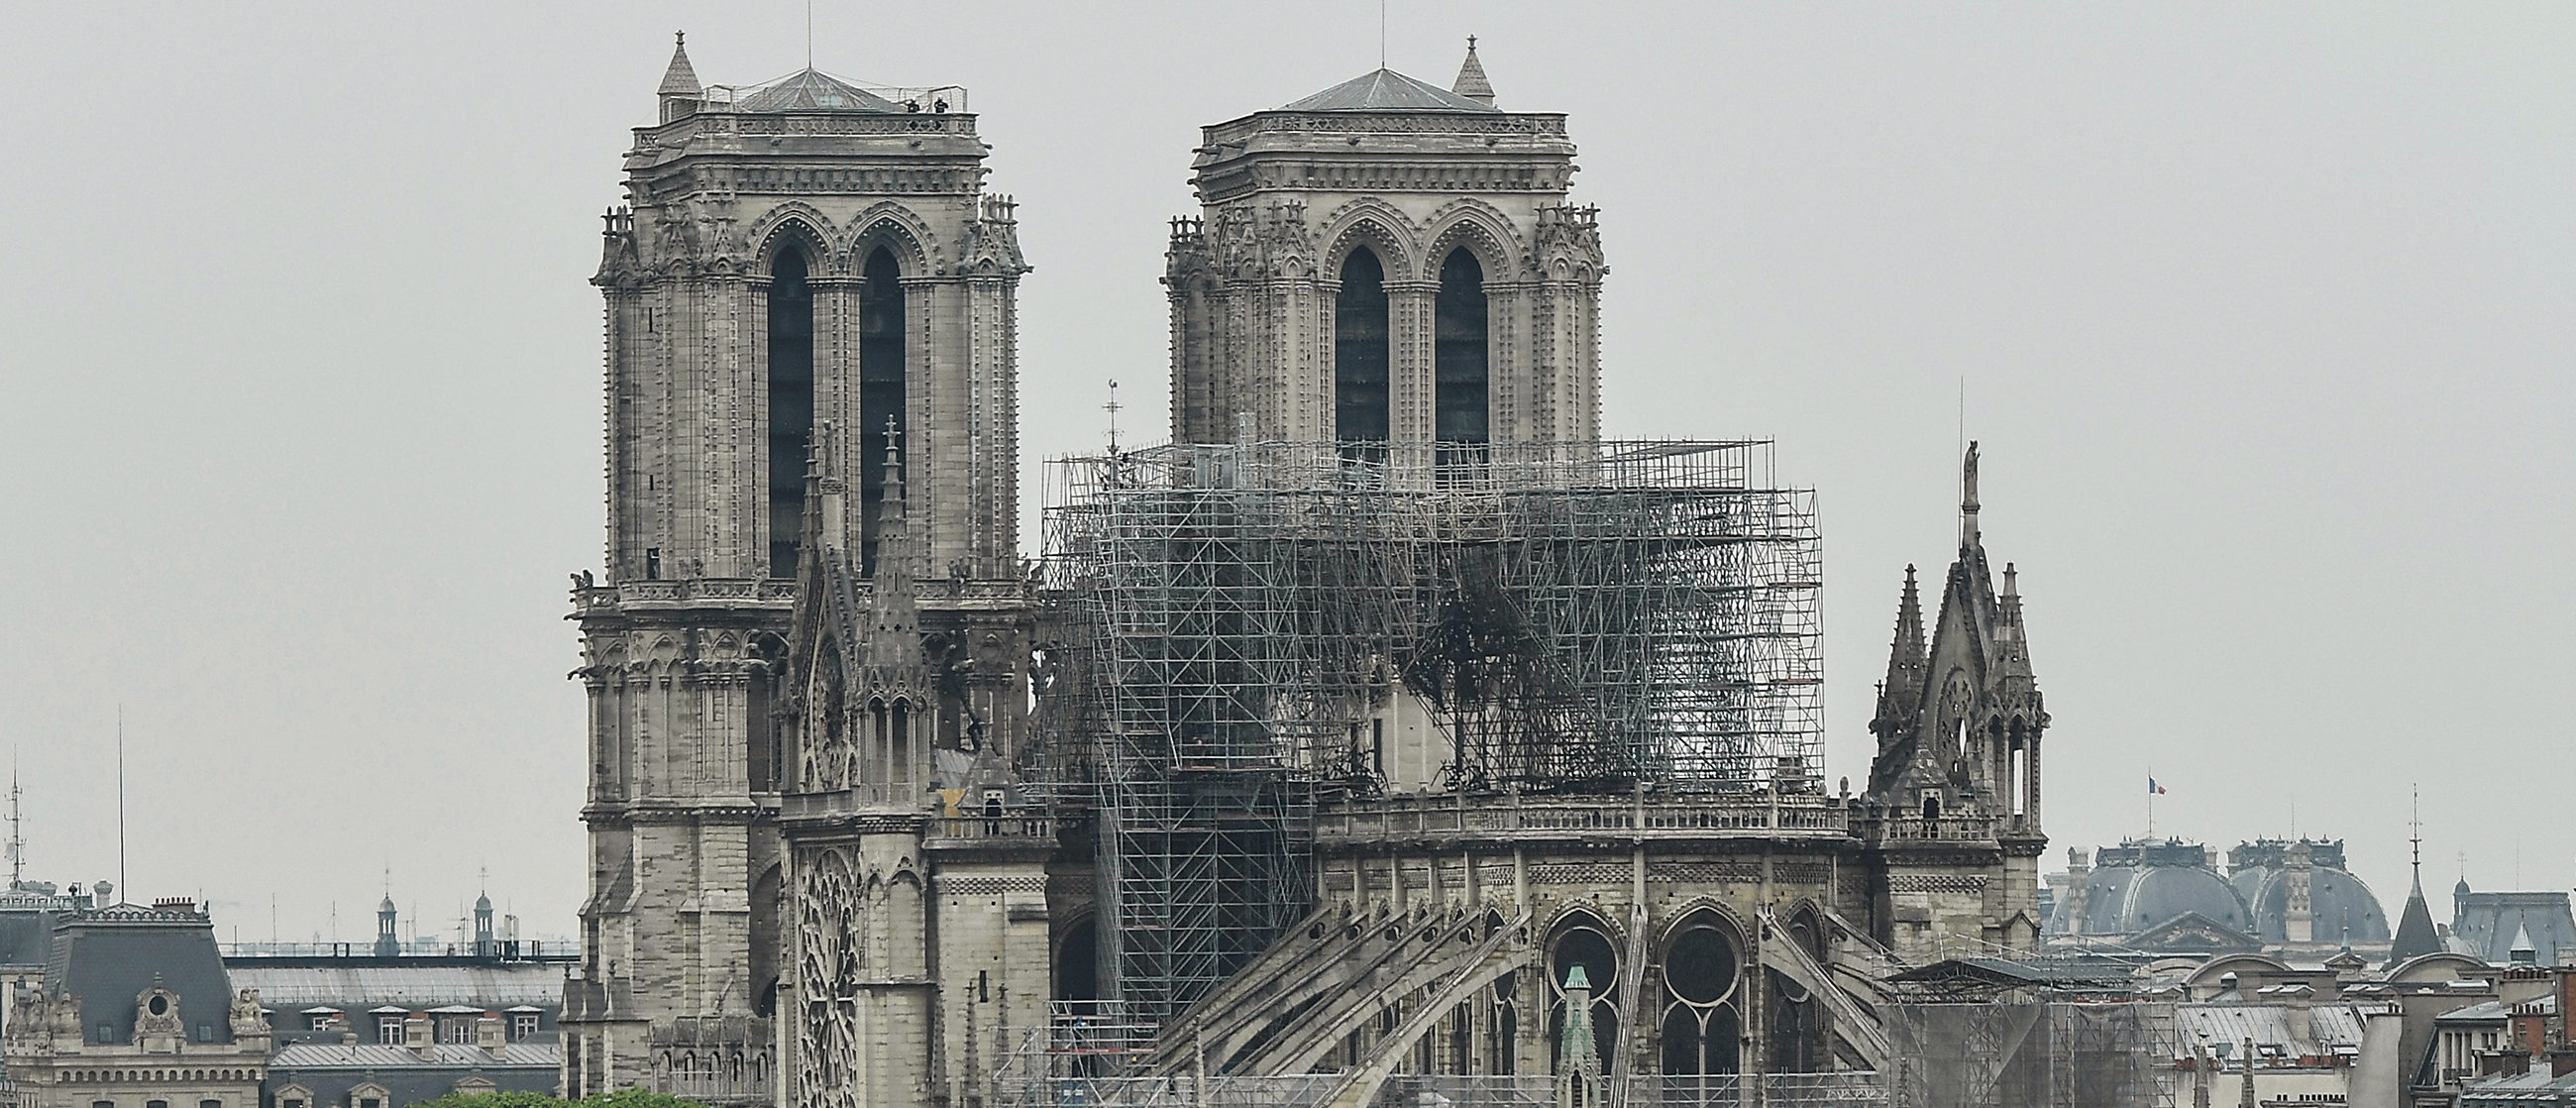 TOPSHOT - A picture taken on April 16, 2019 shows Notre-Dame-de-Paris in the aftermath of a fire that devastated the cathedral. - Paris was struck in its very heart as flames devoured the roof of Notre-Dame, on April 15, 2019, the medieval cathedral made famous by Victor Hugo, its two massive towers flanked with gargoyles instantly recognisable even by people who have never visited the city. (Photo by BERTRAND GUAY / AFP) (Photo credit should read BERTRAND GUAY/AFP via Getty Images)